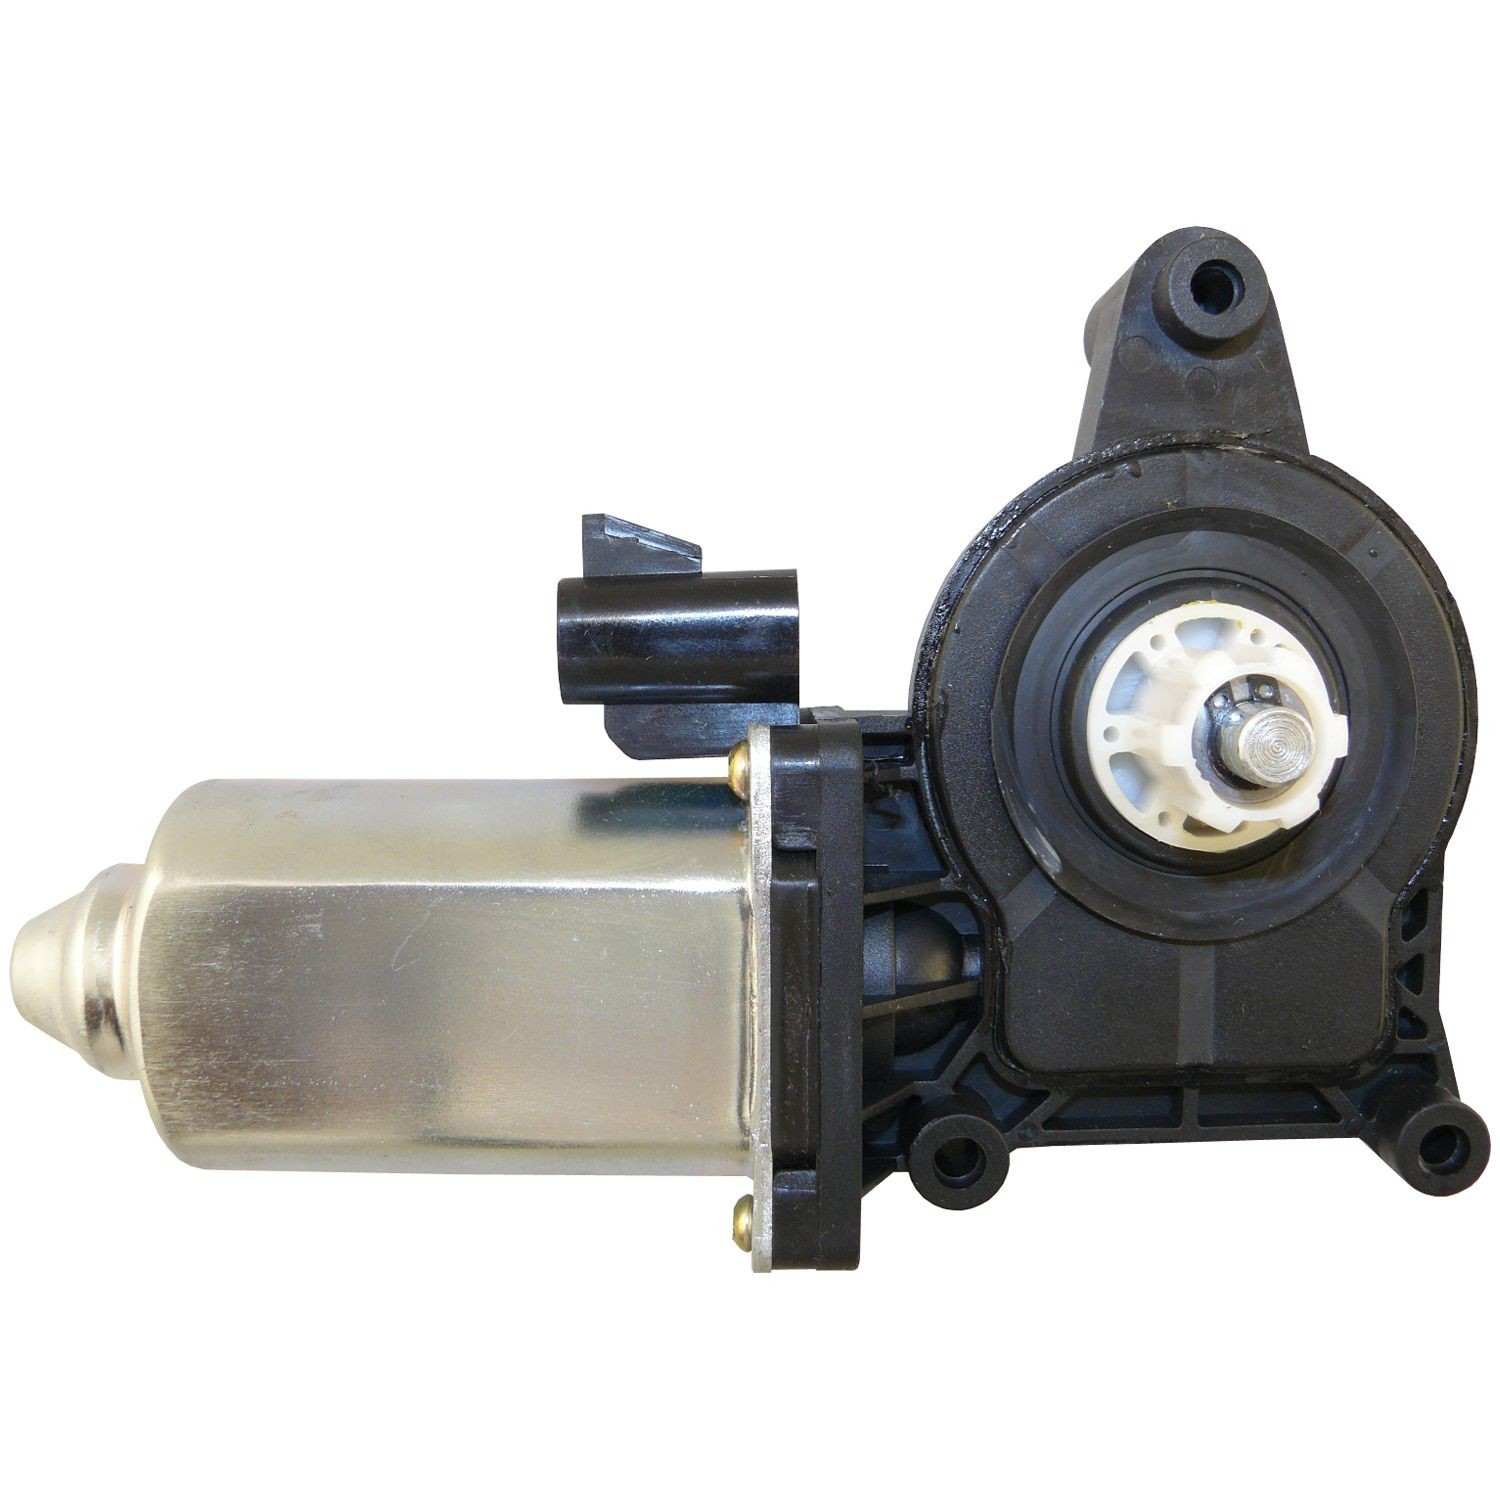 MAGNETI MARELLI OFFERED BY MOPAR - Power Window Motor - MGM 1AMWM82981